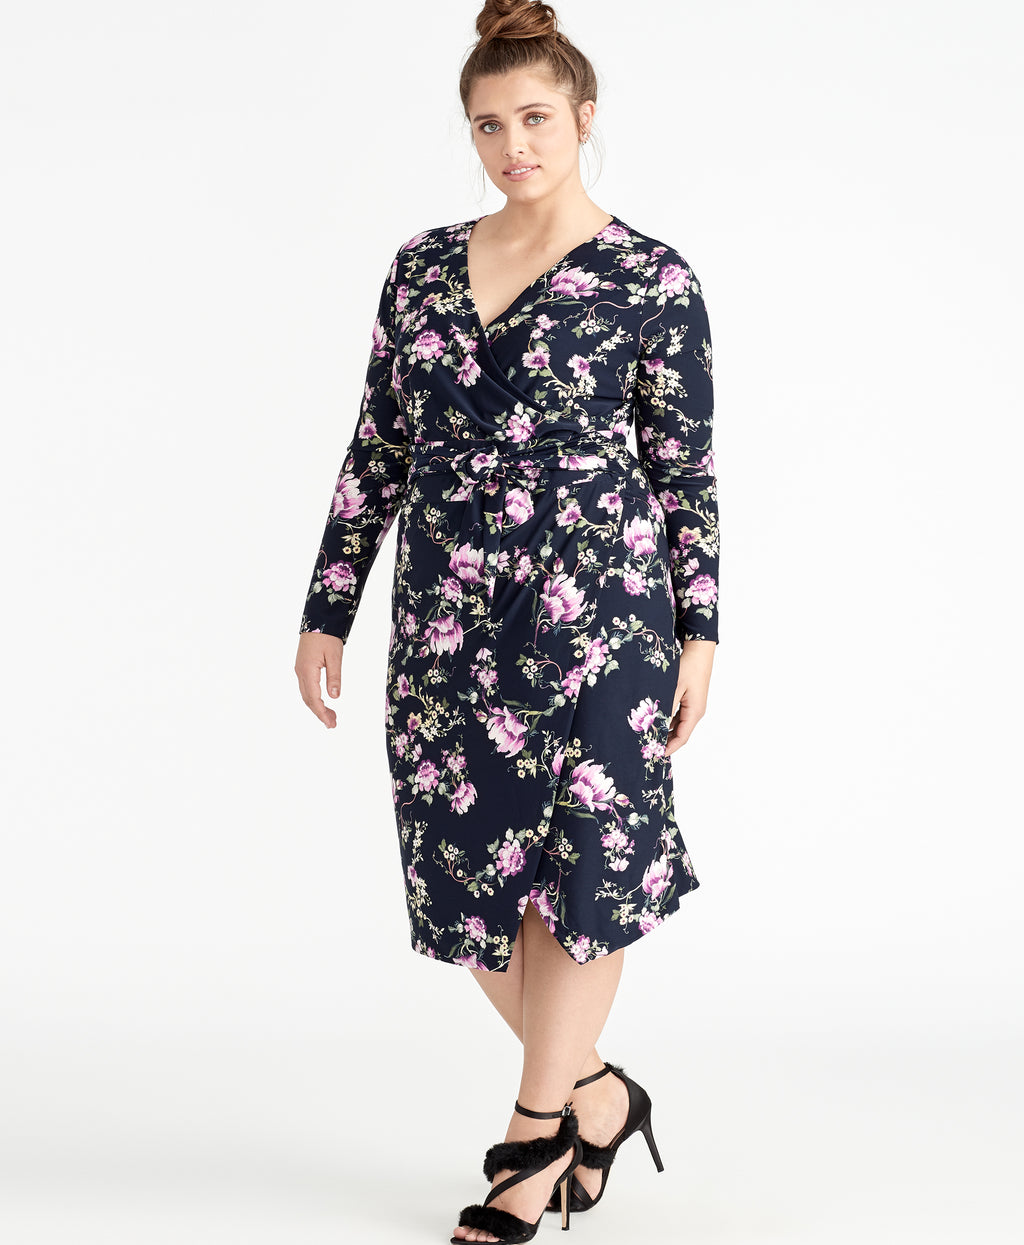 Floral Printed Tie Waist Jersey Dress | Floral Printed Tie Waist Jersey Dress